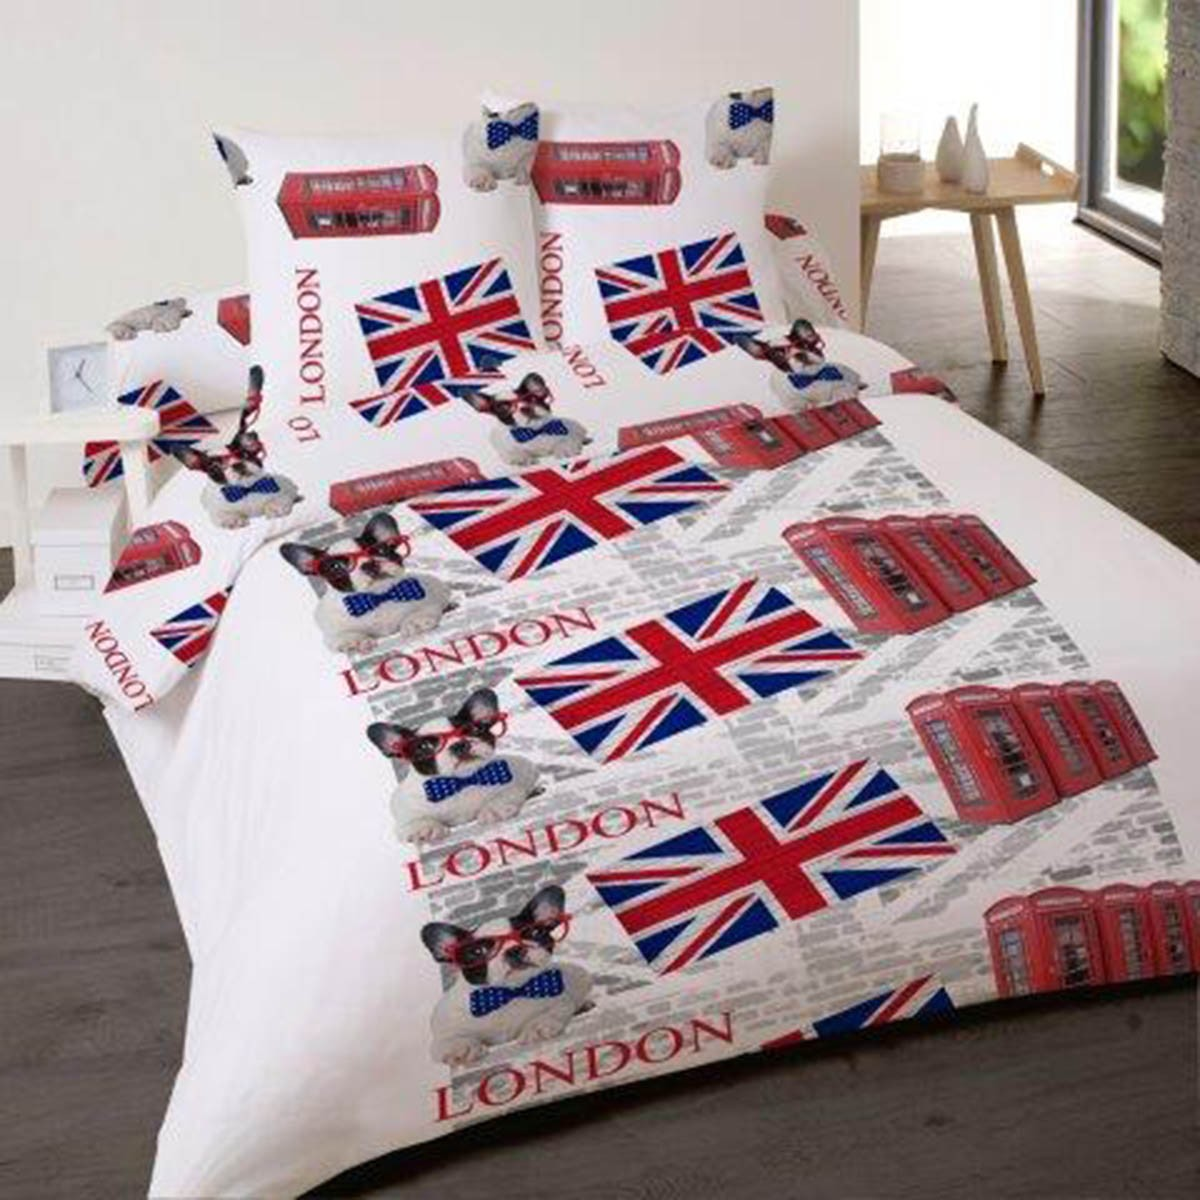 Housse de couette london rock 220x240 2 taies d 39 oreiler for Housse de couette london 220x240